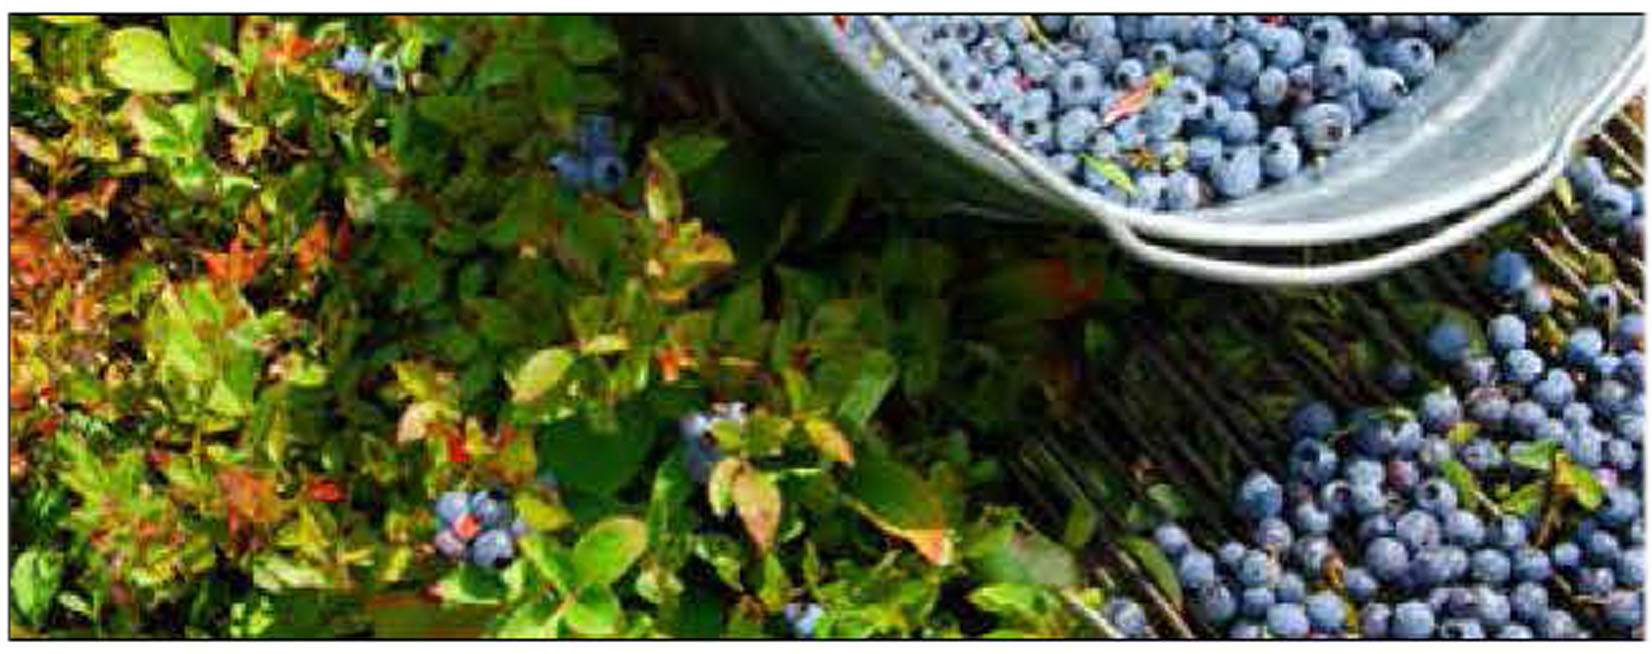 Blueberries- Local delights